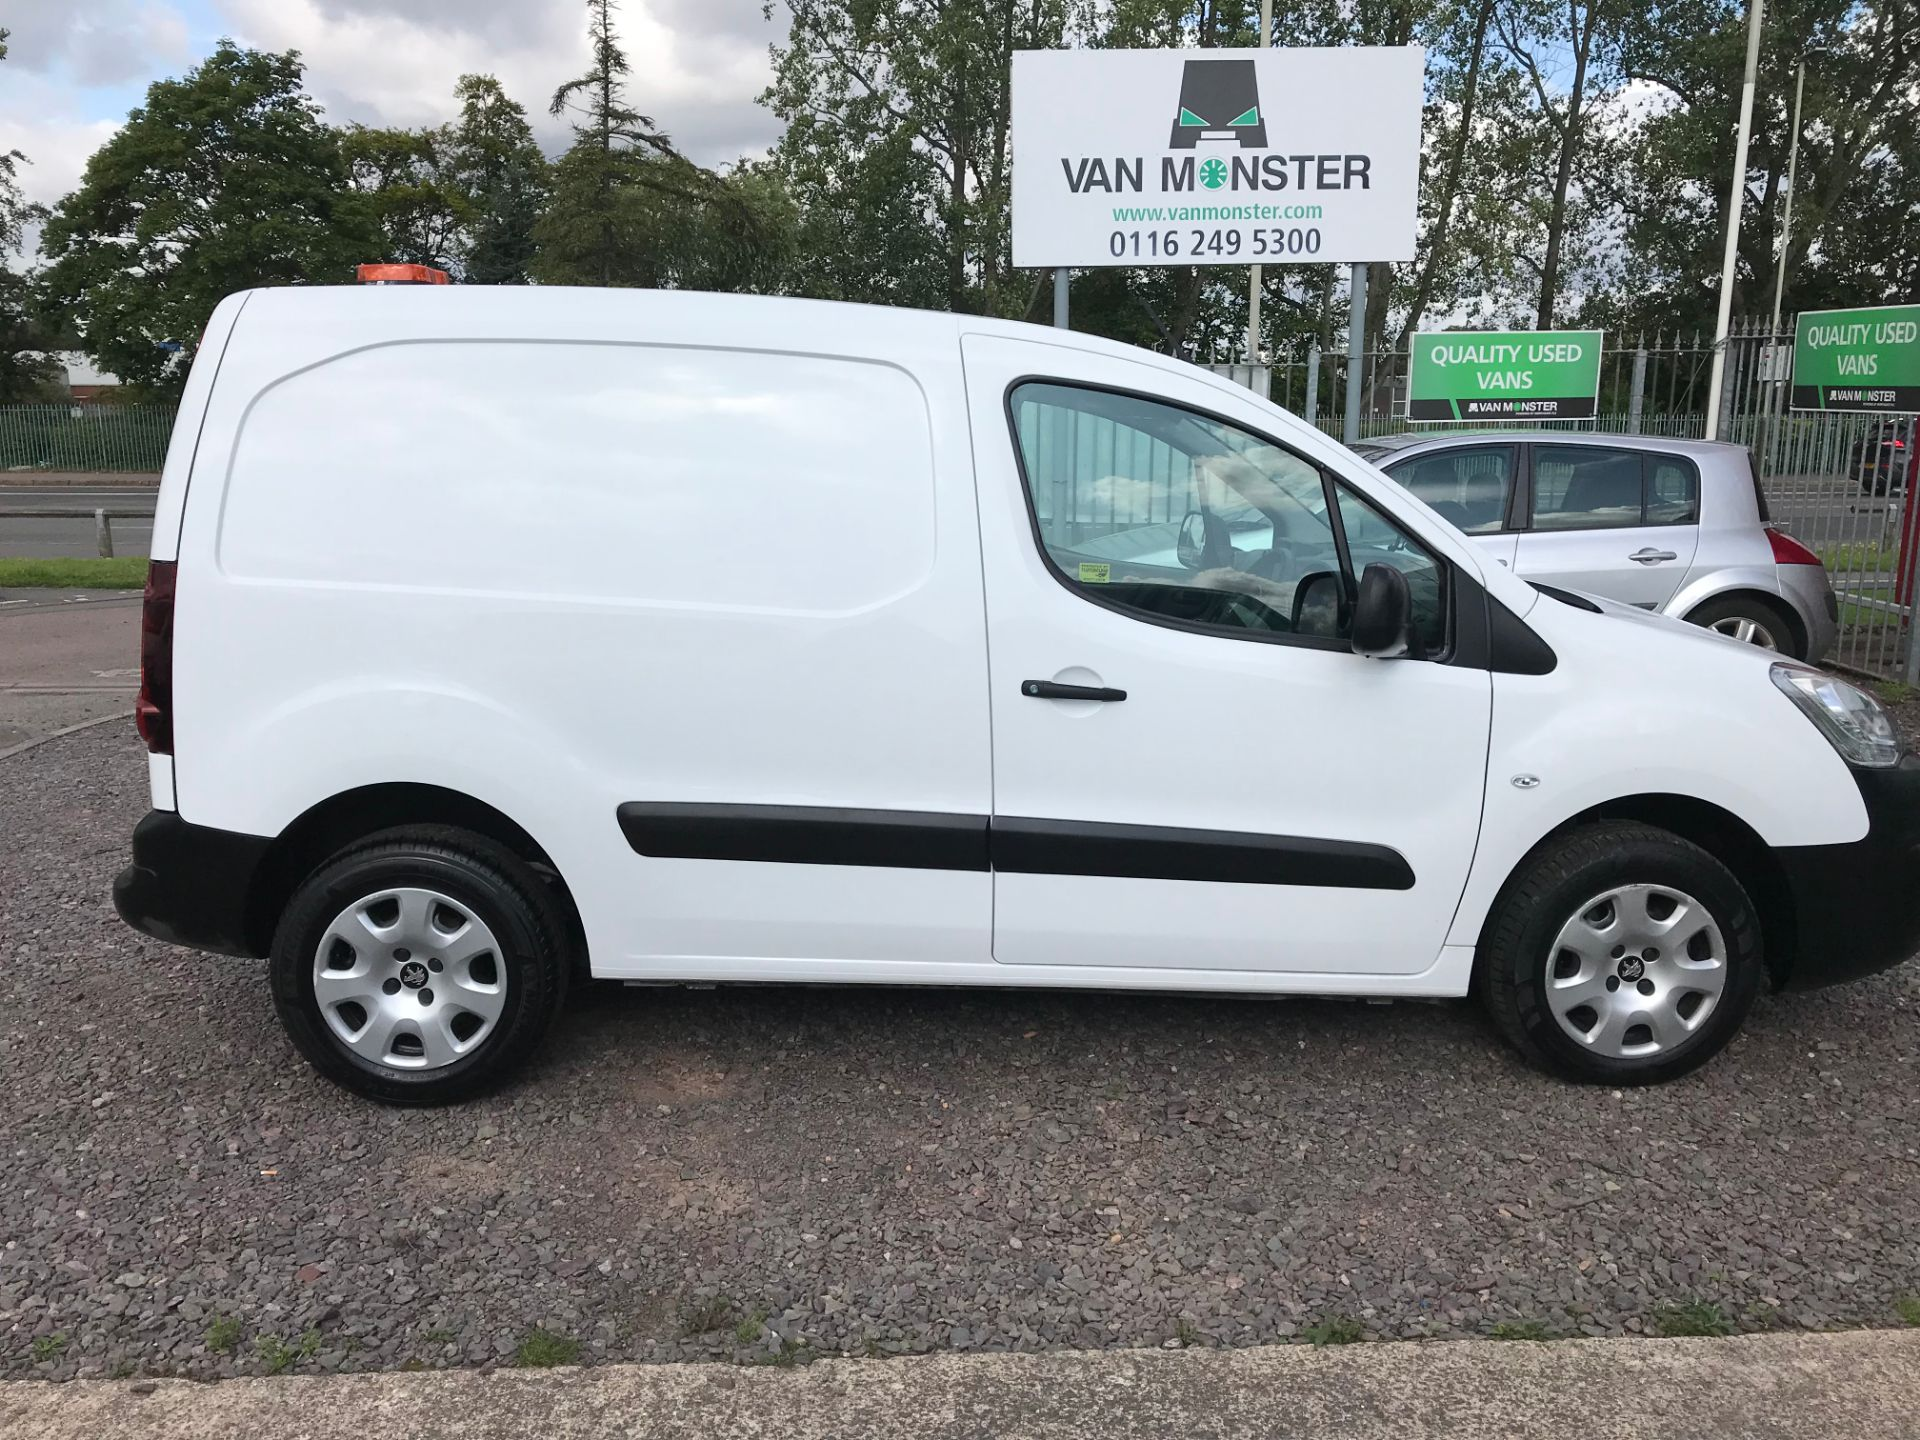 2016 Peugeot Partner L1 850 S 1.6 92PS (SLD) PROFESSIONAL 3 SEATS EURO 5  (OY16ZWS) Image 2